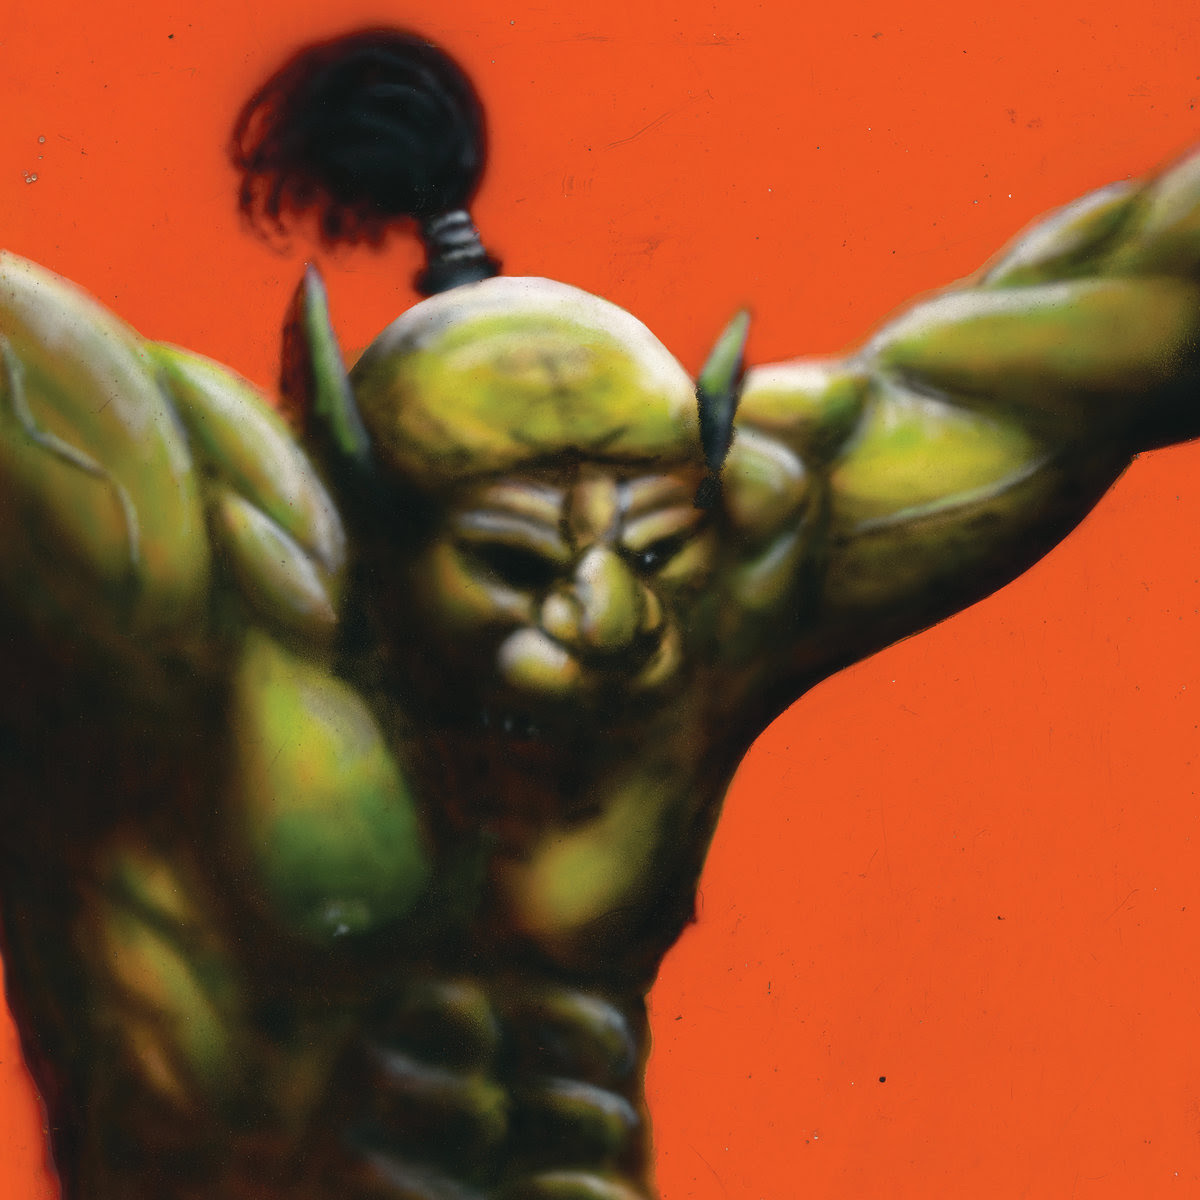 Face Stabber by Thee Oh Sees image